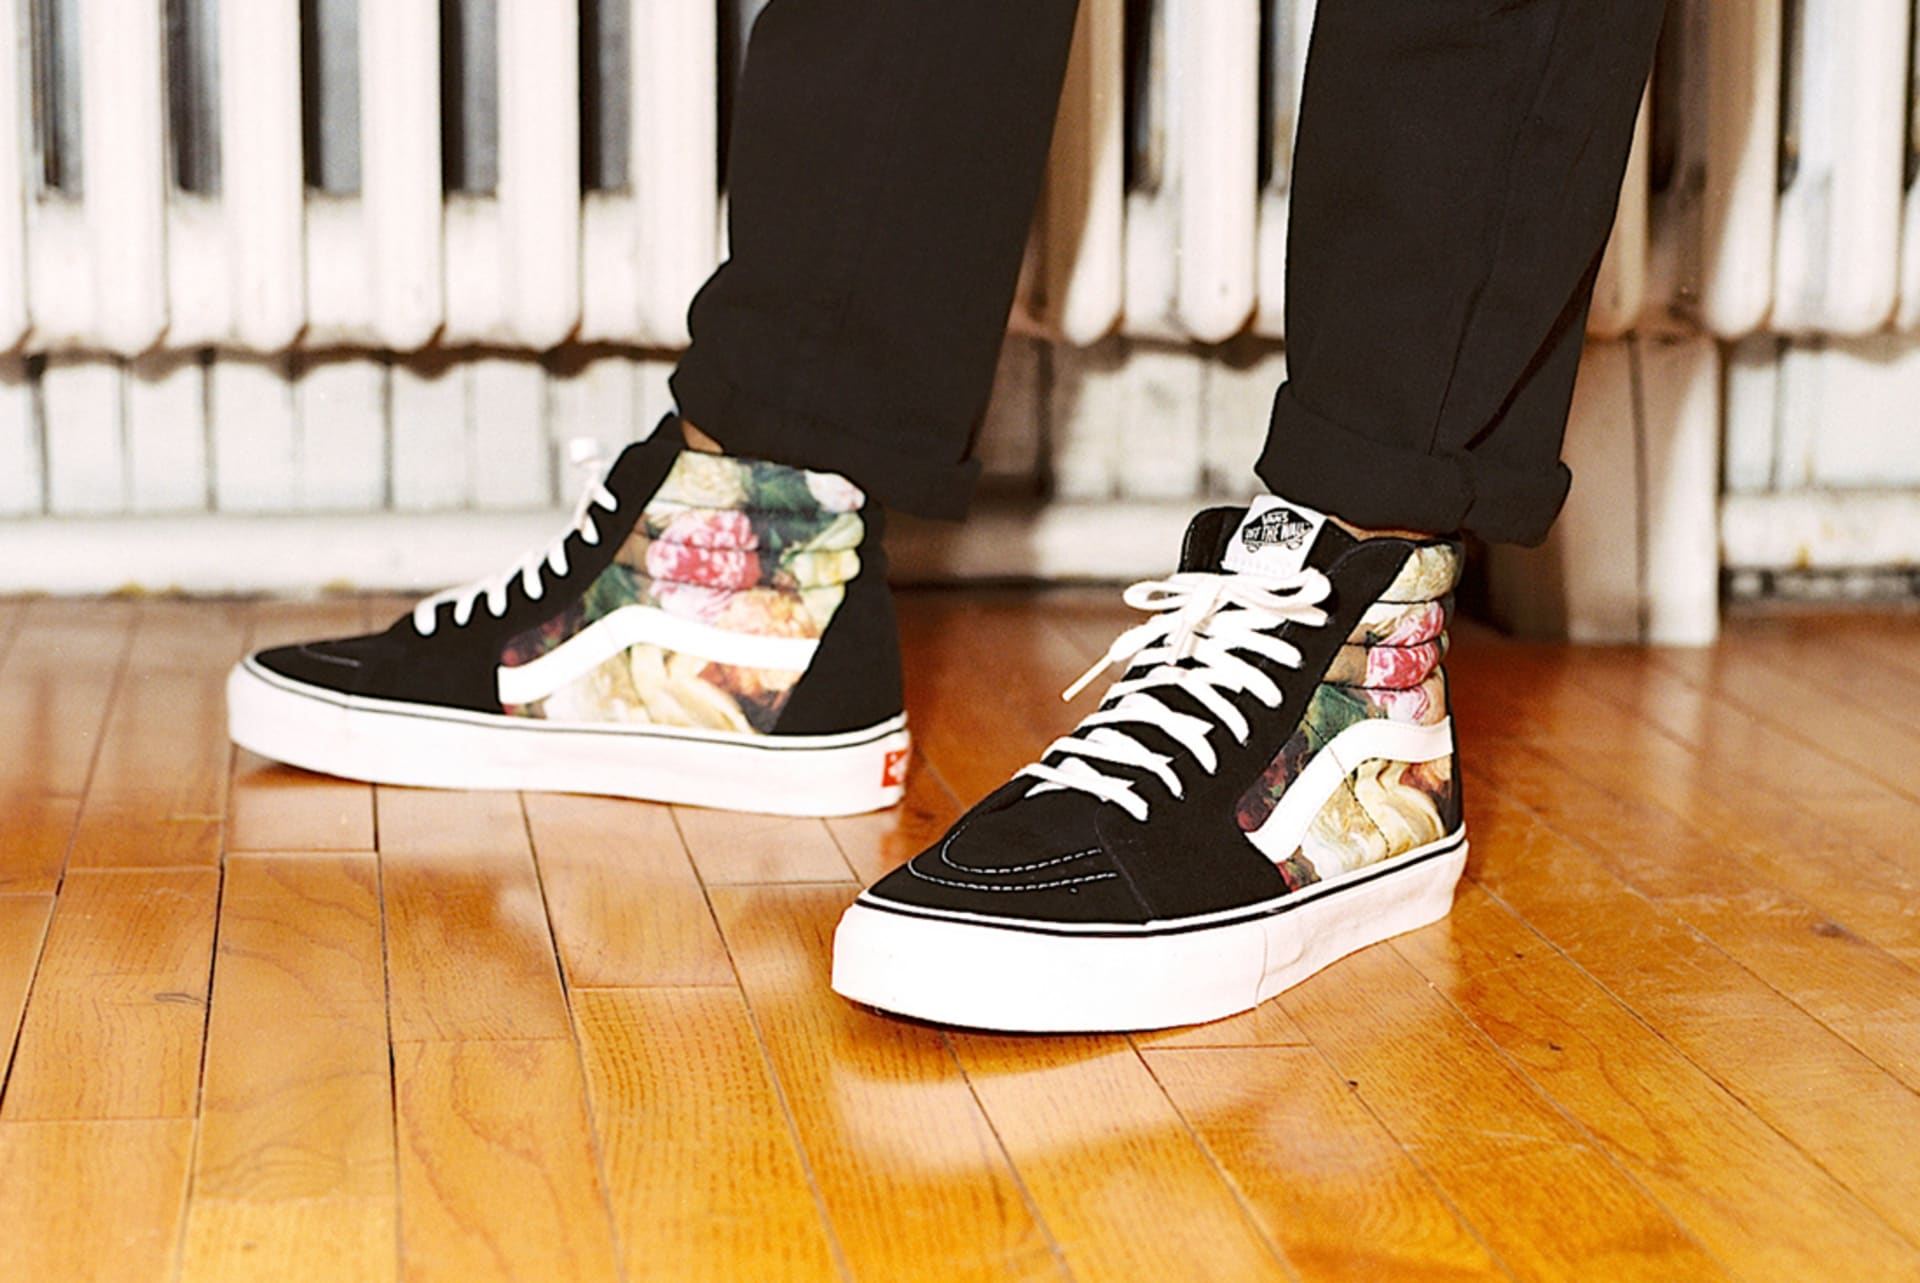 45965a6e2 How Fashion Came to Embrace Vans' Skate Sneakers